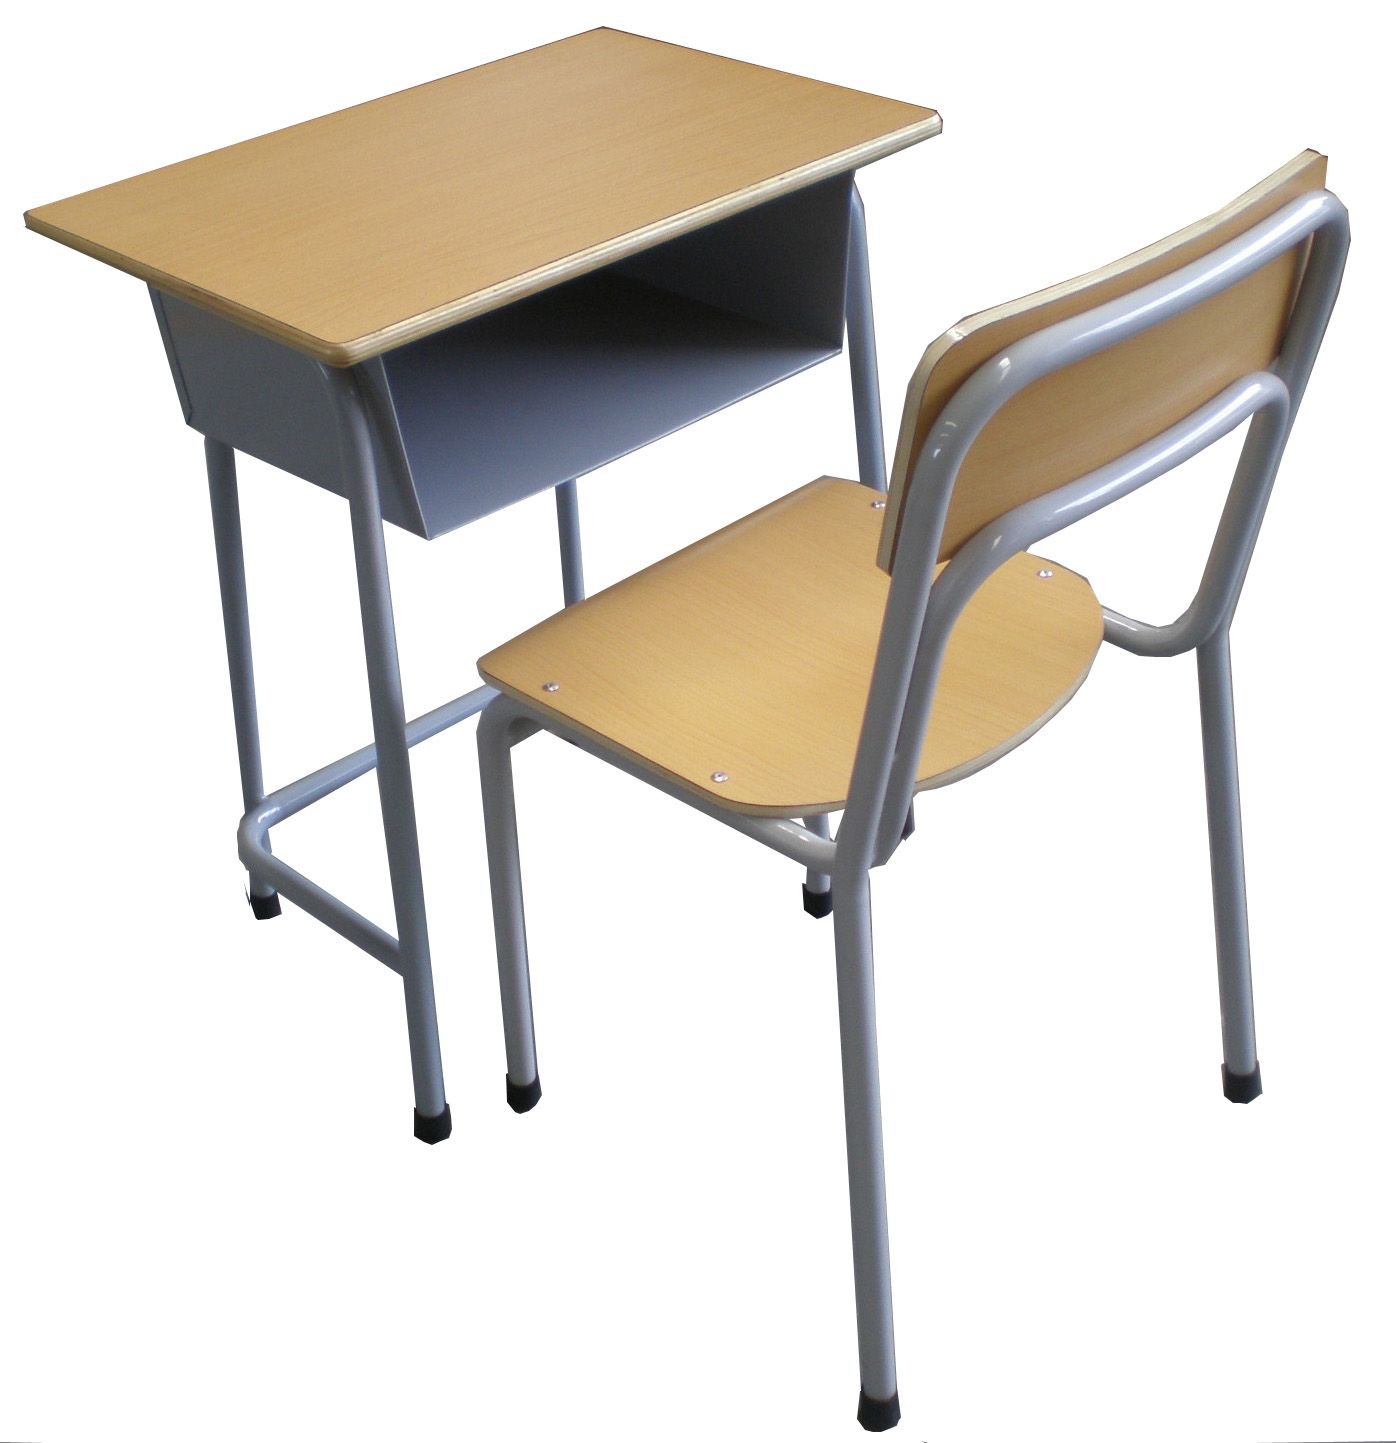 school desk clipart clipart panda free clipart images rh clipartpanda com school desk clipart free empty school desk clipart